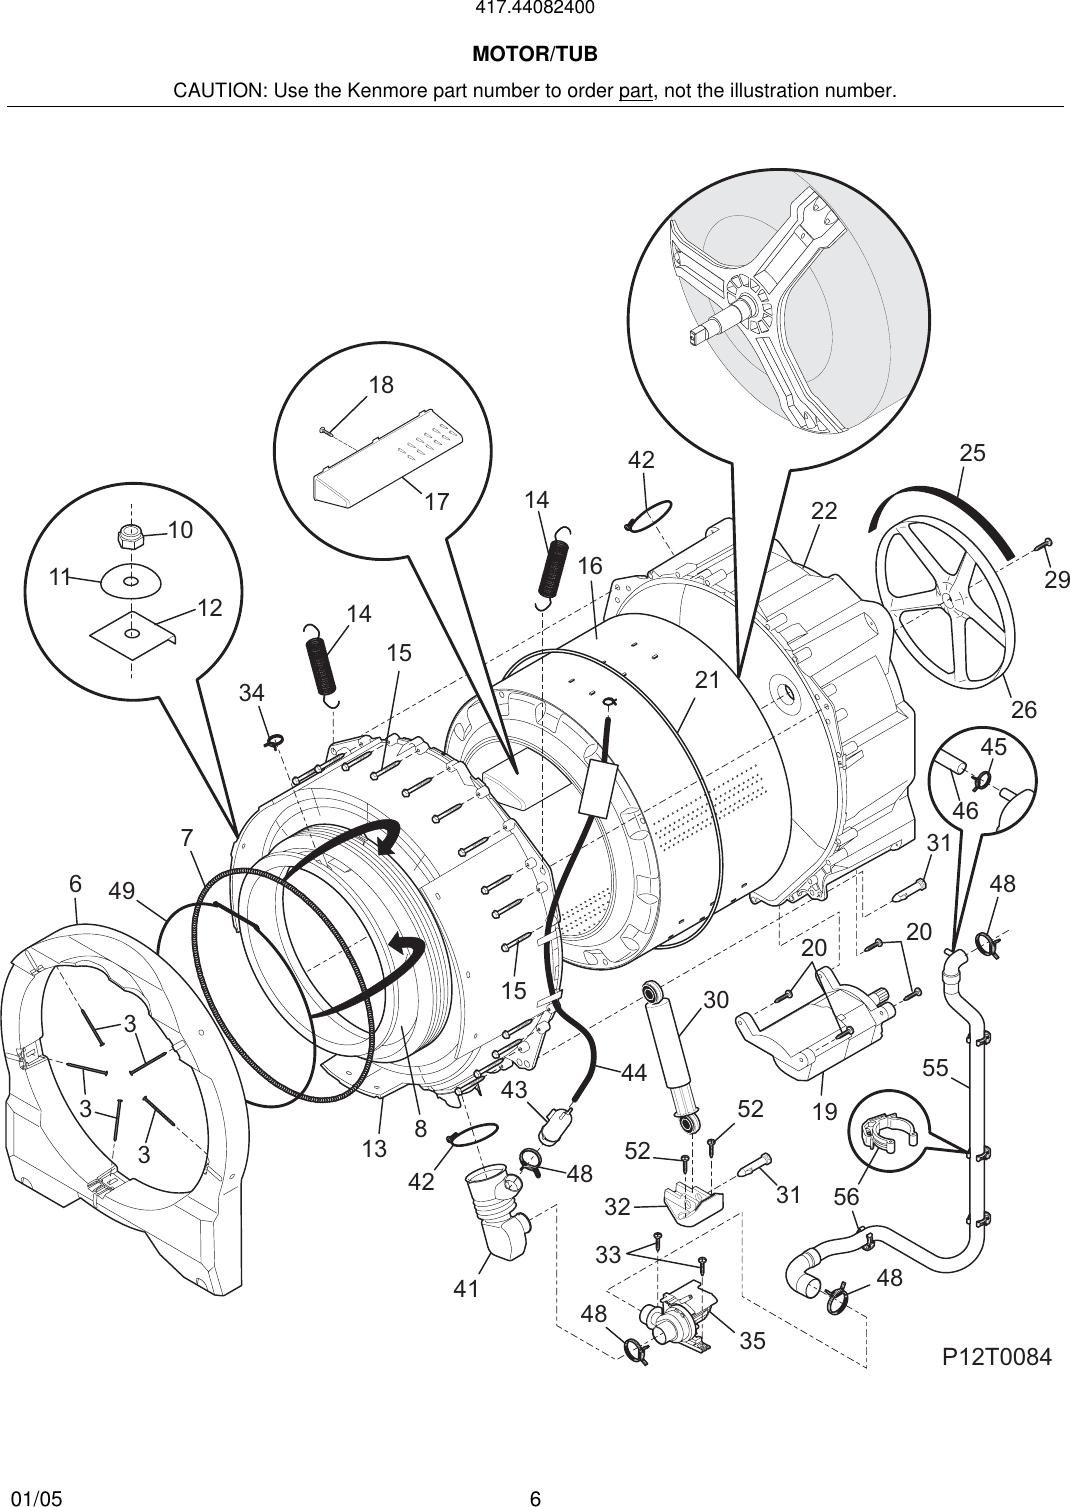 To Begin A Parts Catalog Click Load Contents In The Top Menu Bar Frigidaire Washer Schematic Page 6 Of 9